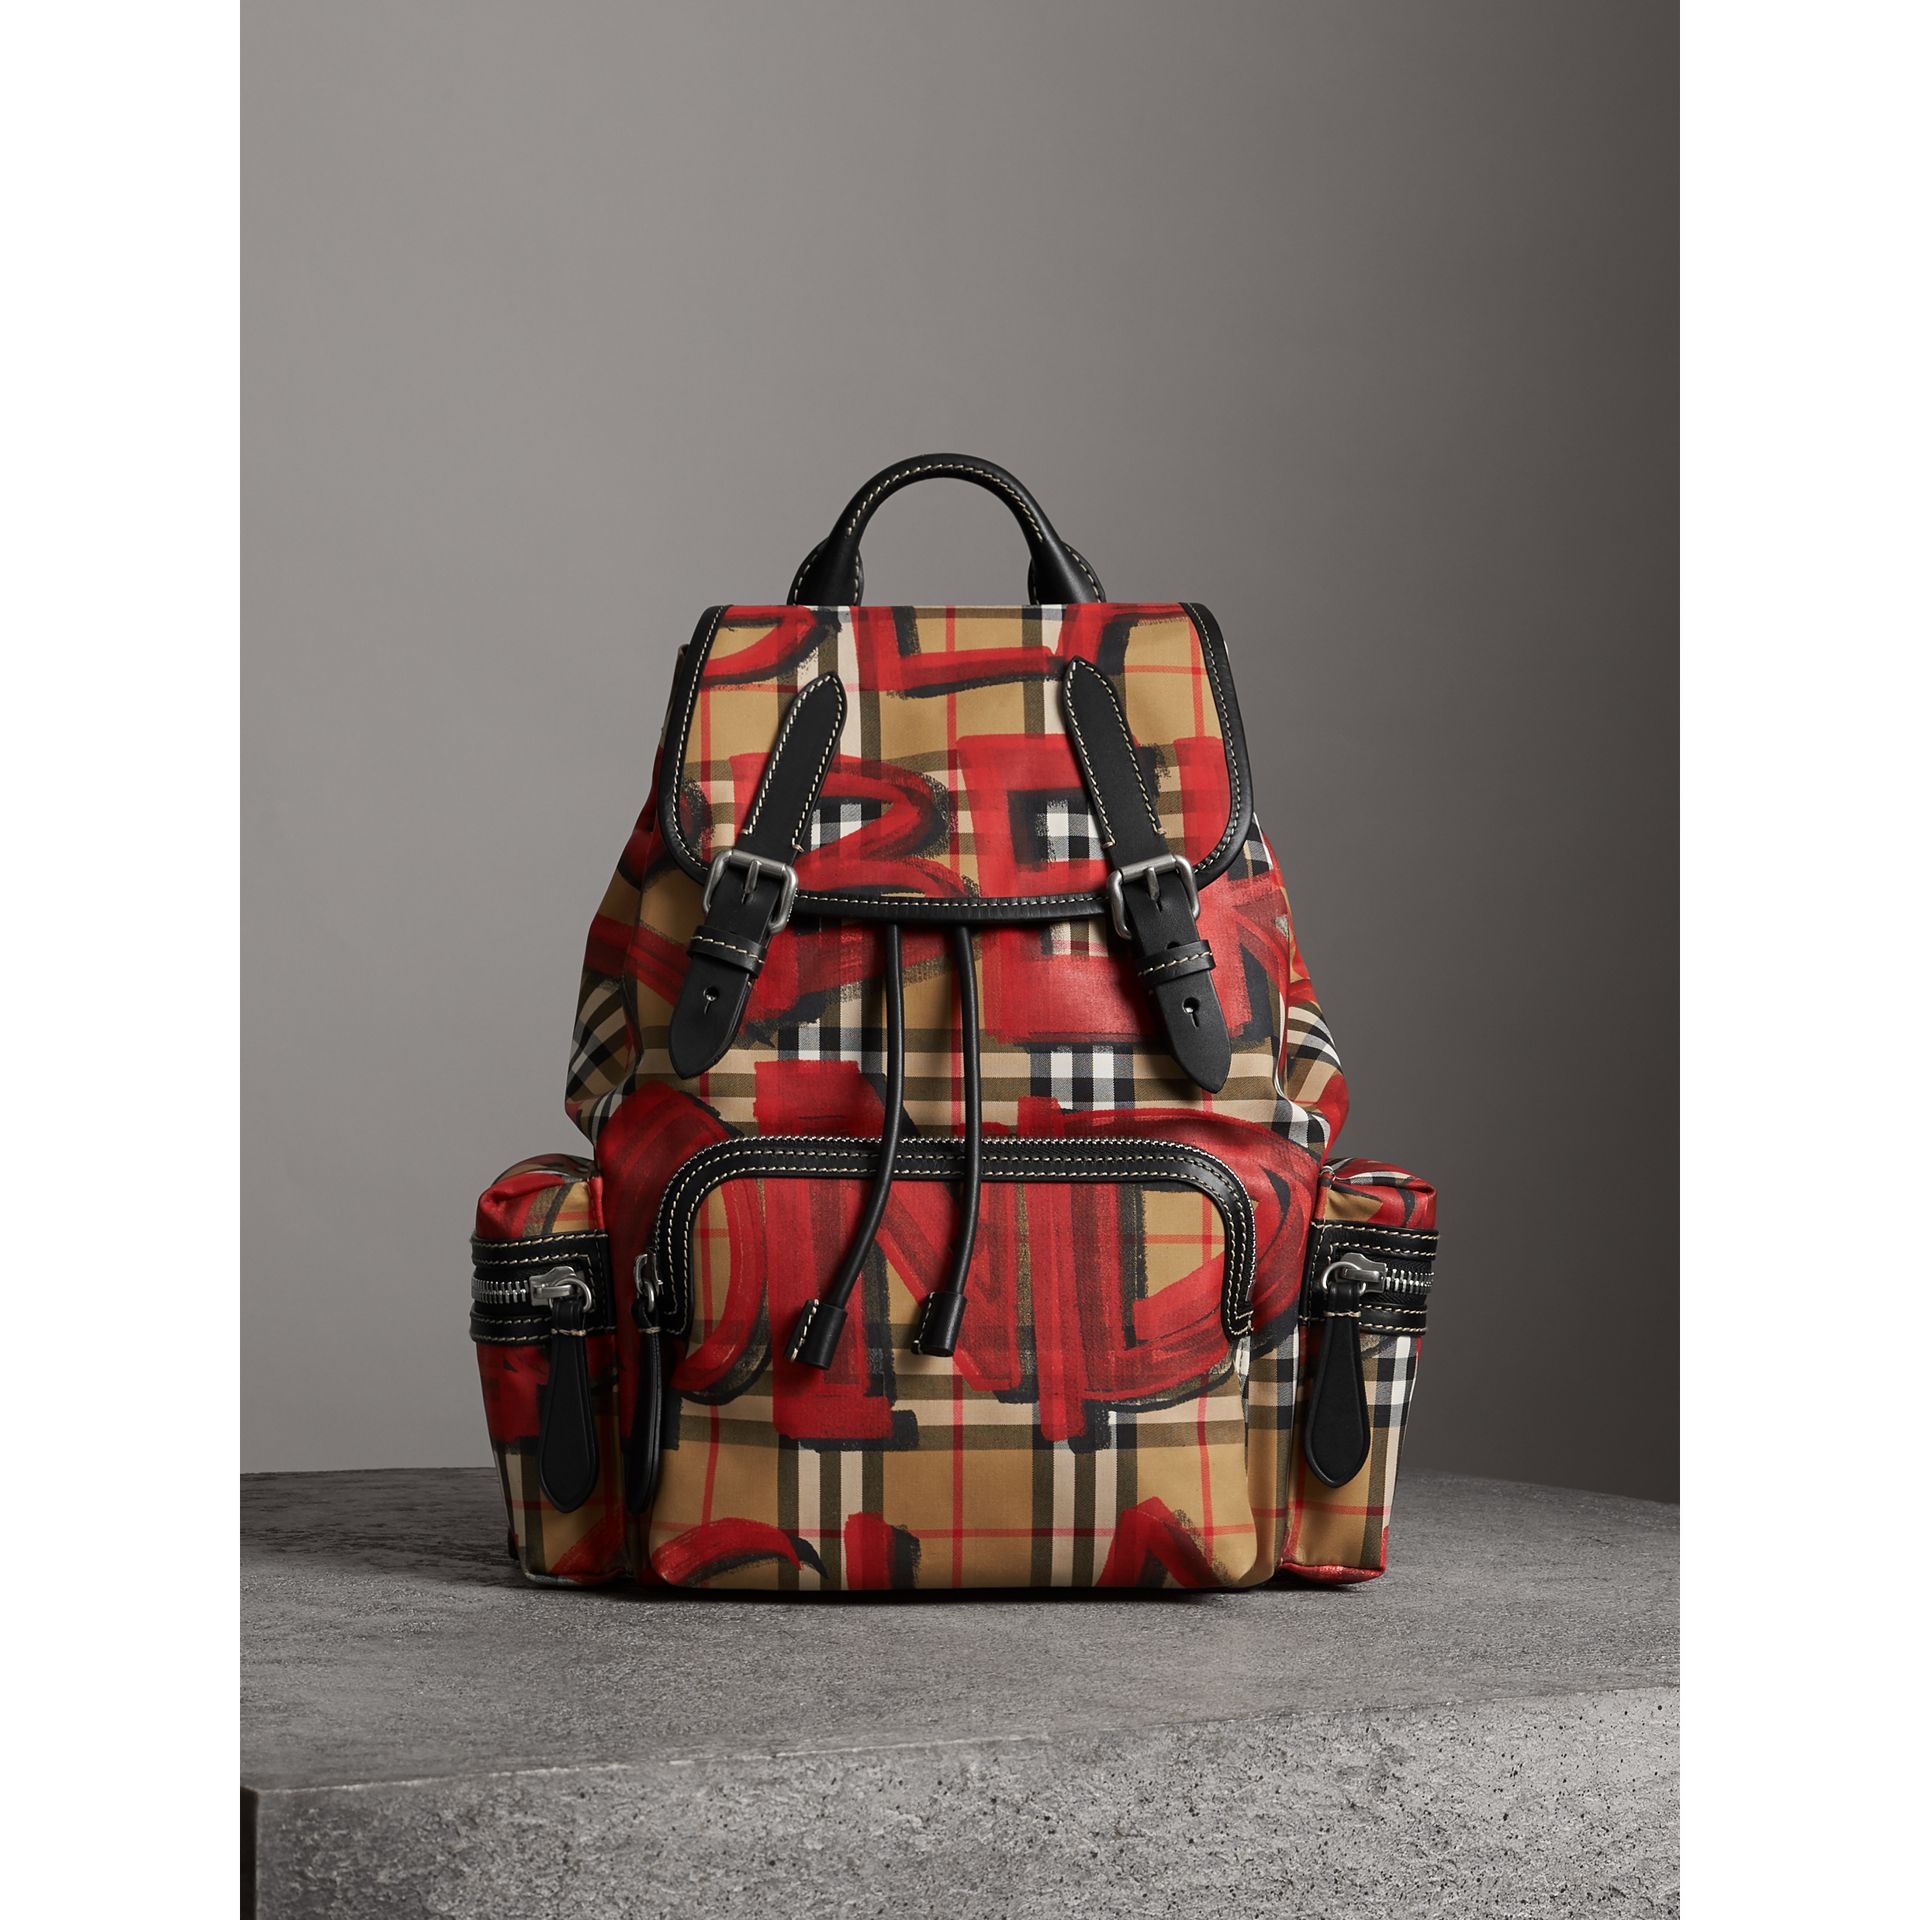 Sac The Rucksack moyen à motif Vintage check et graffiti (Jaune Antique/rouge) - Femme | Burberry - photo de la galerie 6